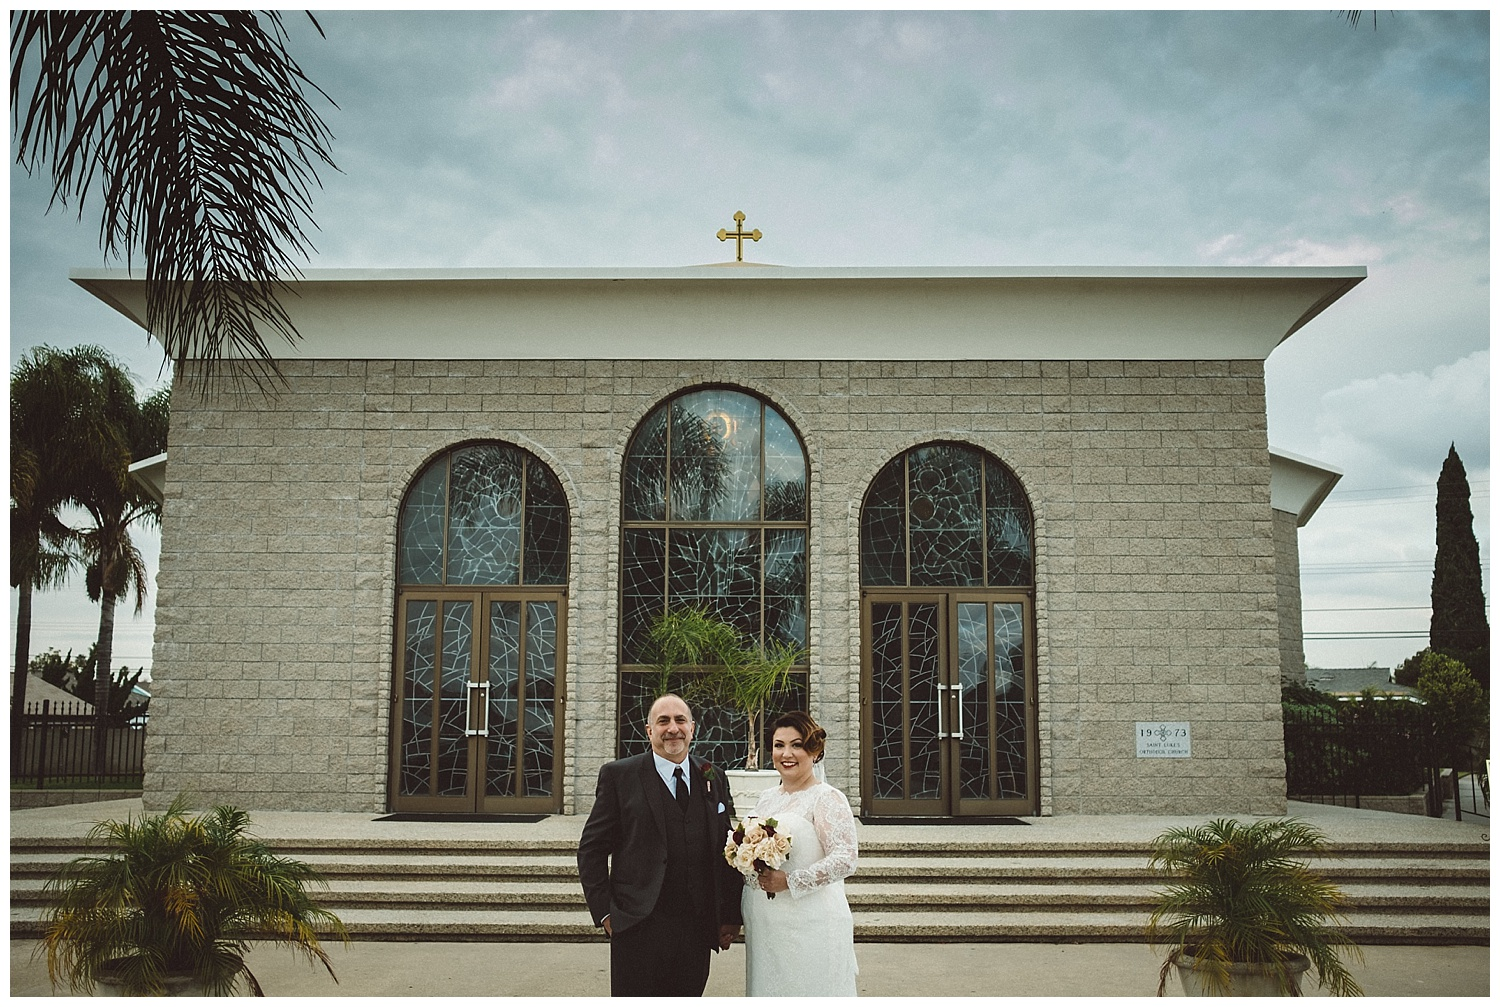 Bride and Groom Portrait in Front of St. Luke's Orthodox Church